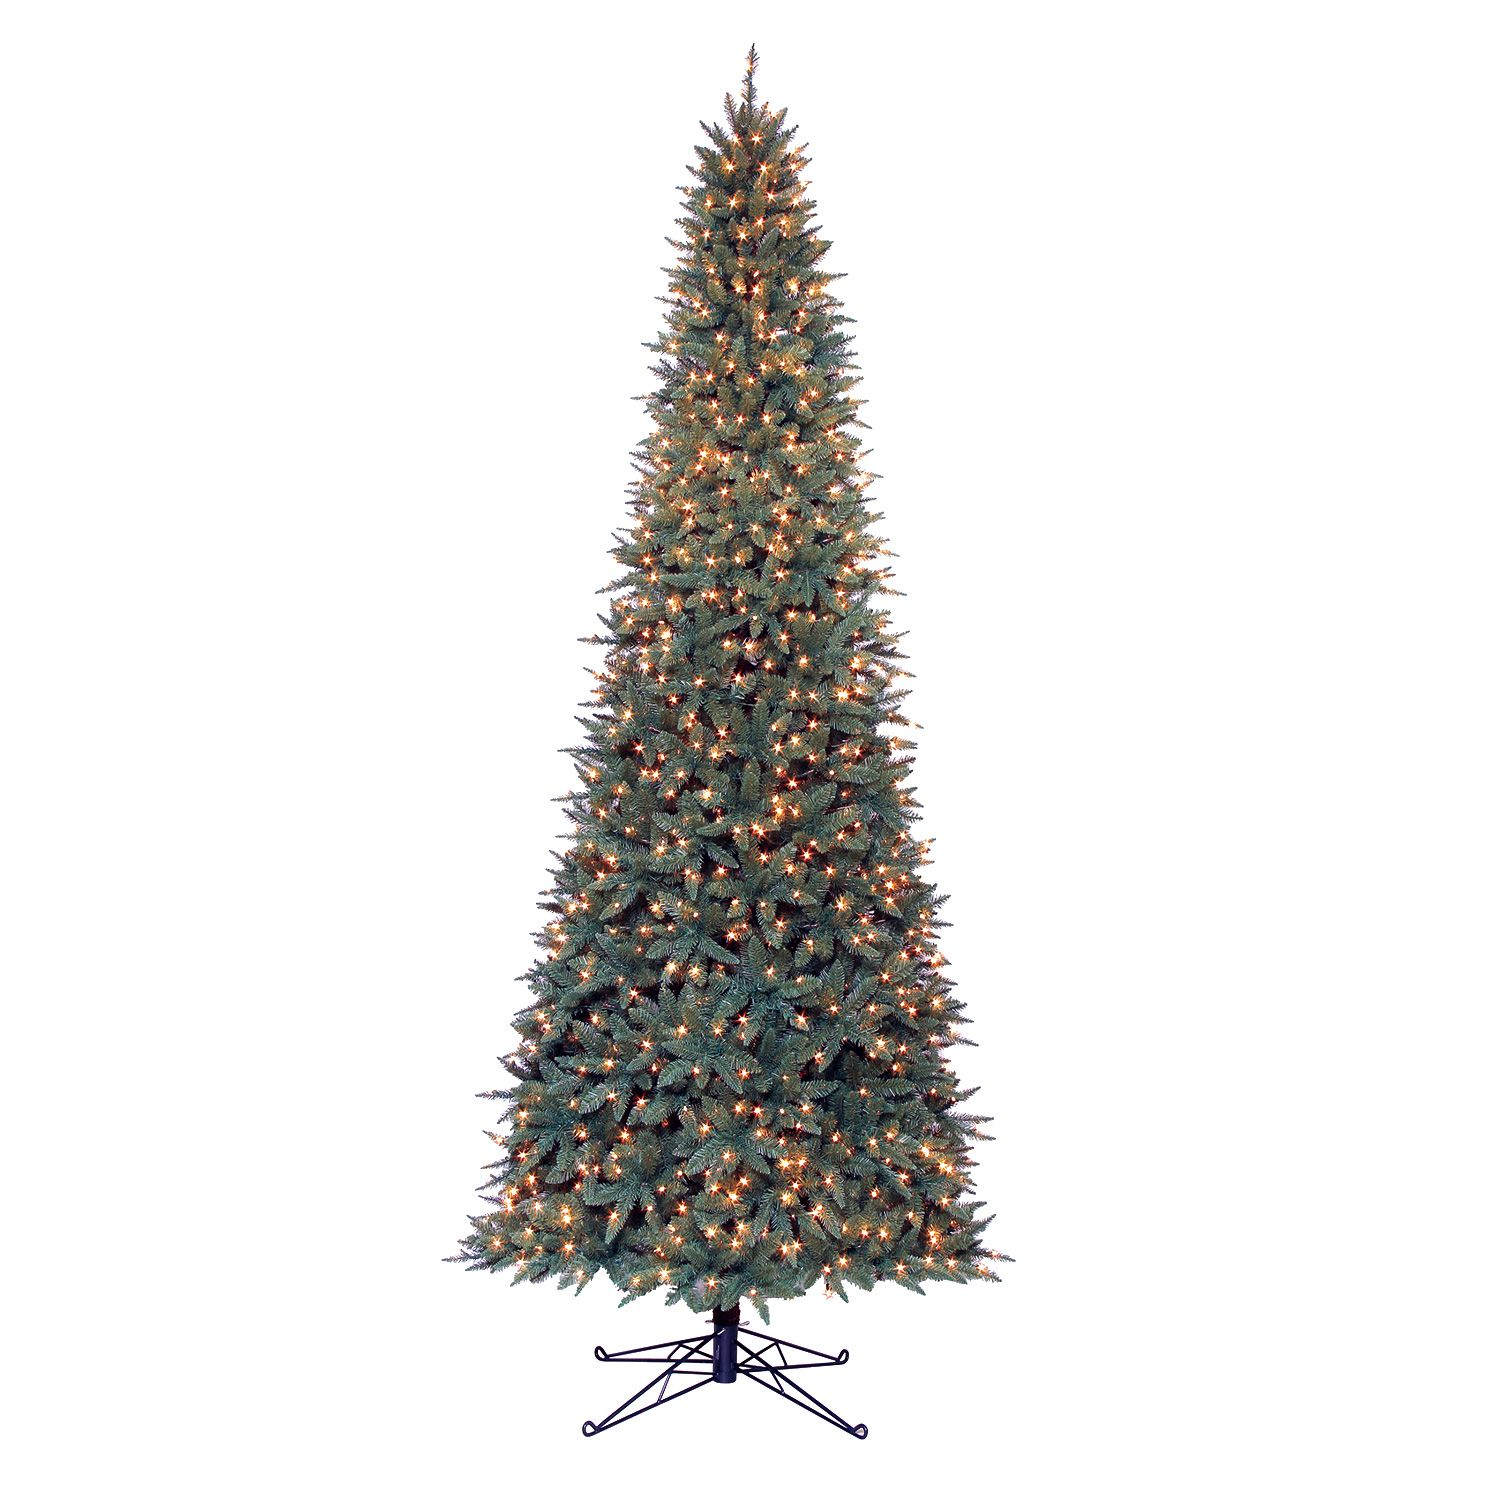 Sanford 12' Sanford Fir Pre-lit Slim Quick Set Tree at Sears.com